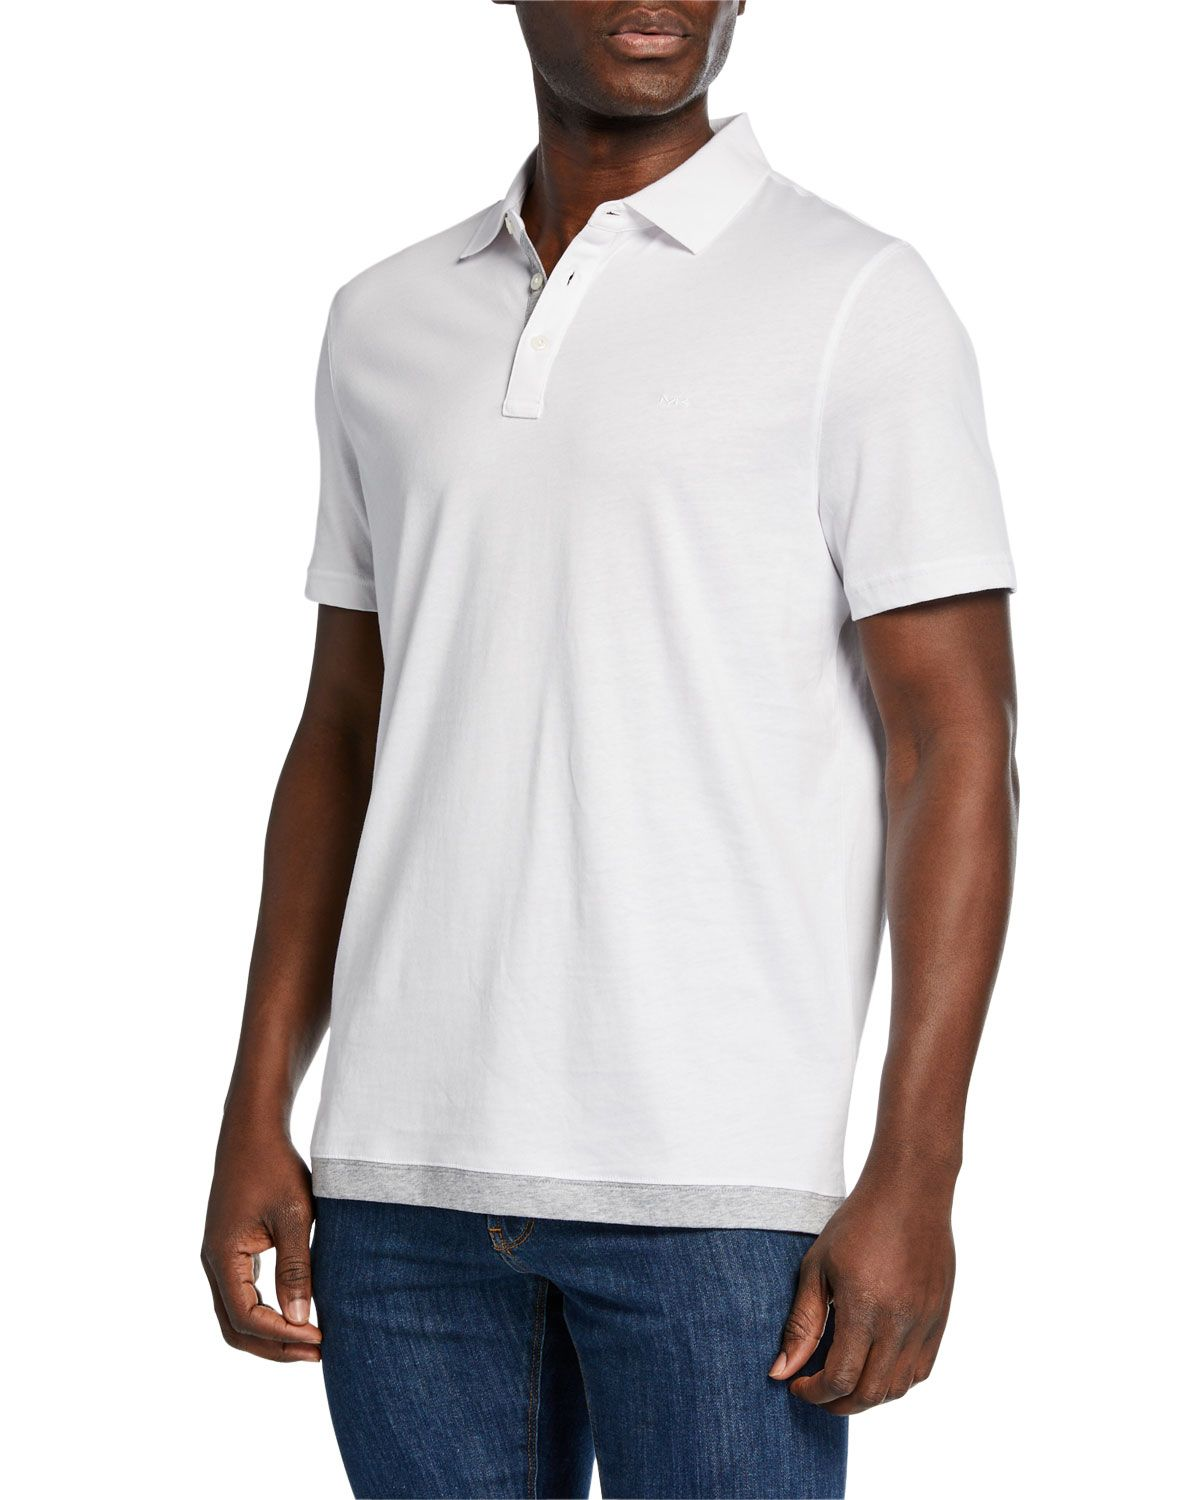 00ebfc5d MICHAEL KORS MEN'S CONTRAST HEM COTTON POLO SHIRT. #michaelkors #cloth